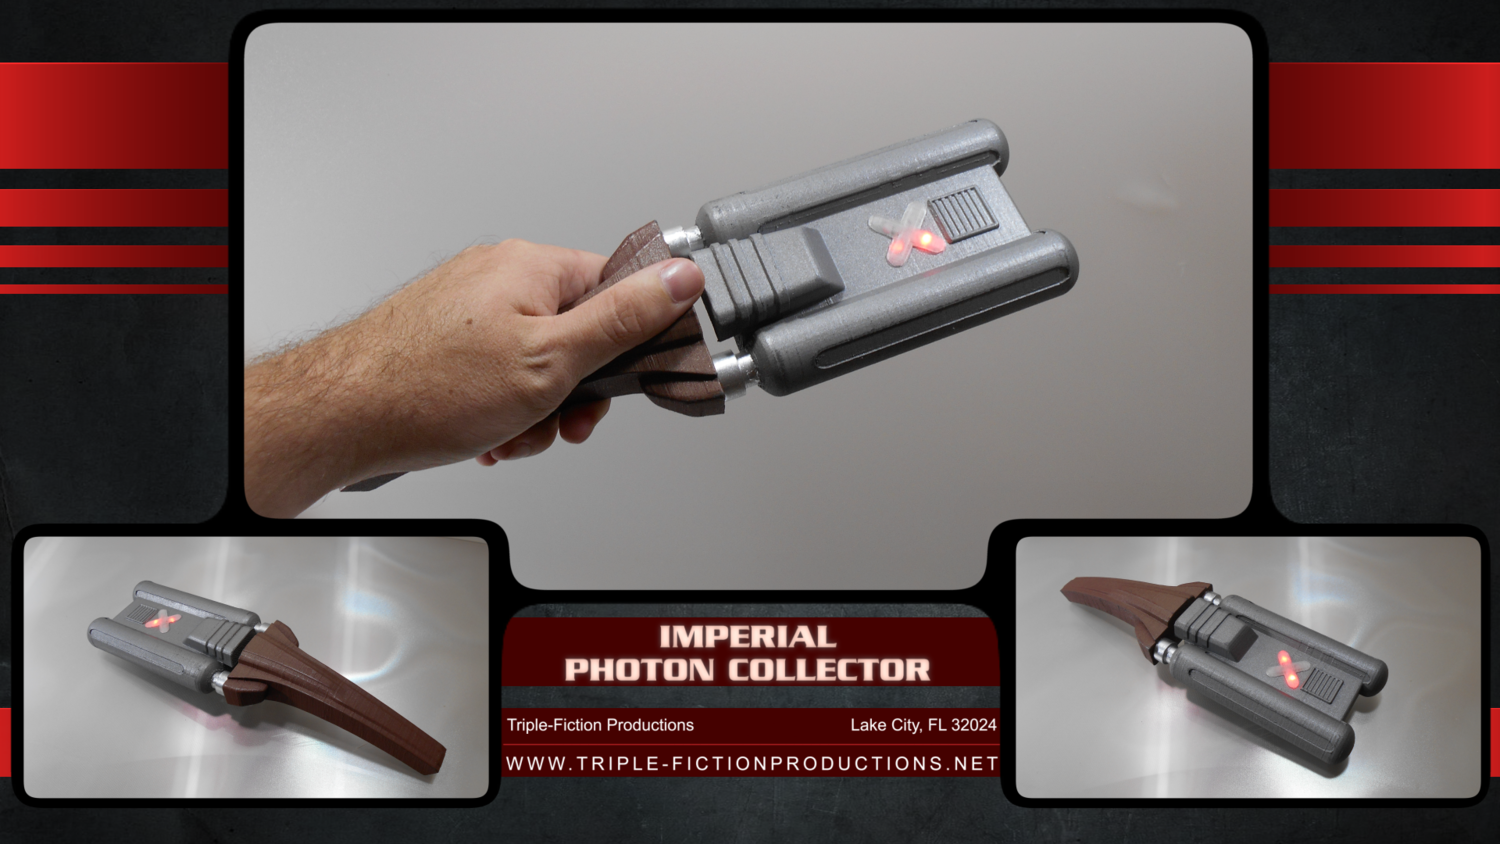 Imperial Photon Collector